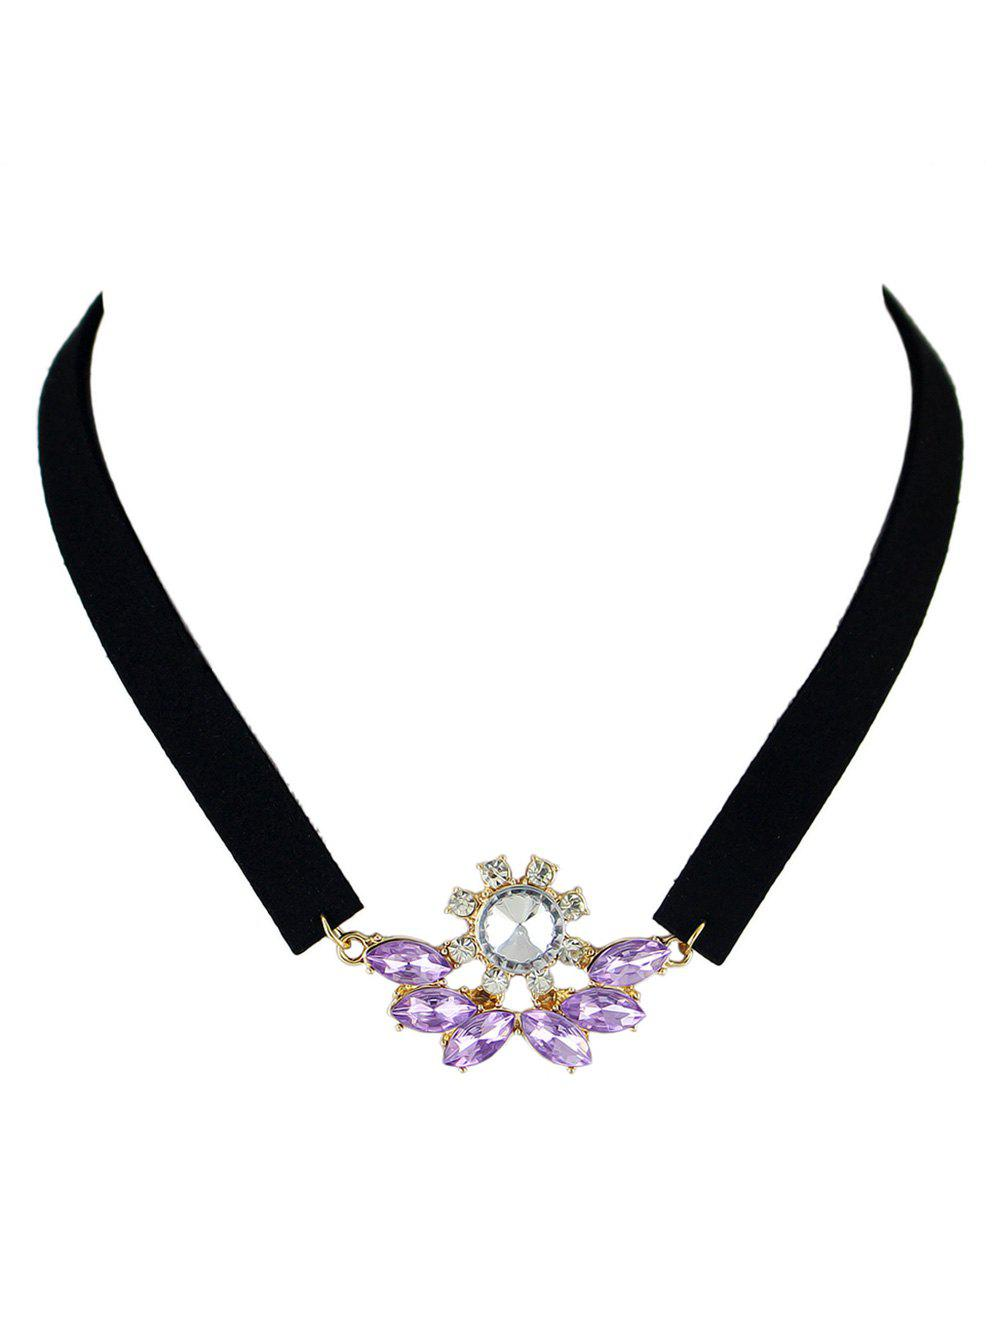 Faux Crystal Velvet Choker Necklace - PURPLE